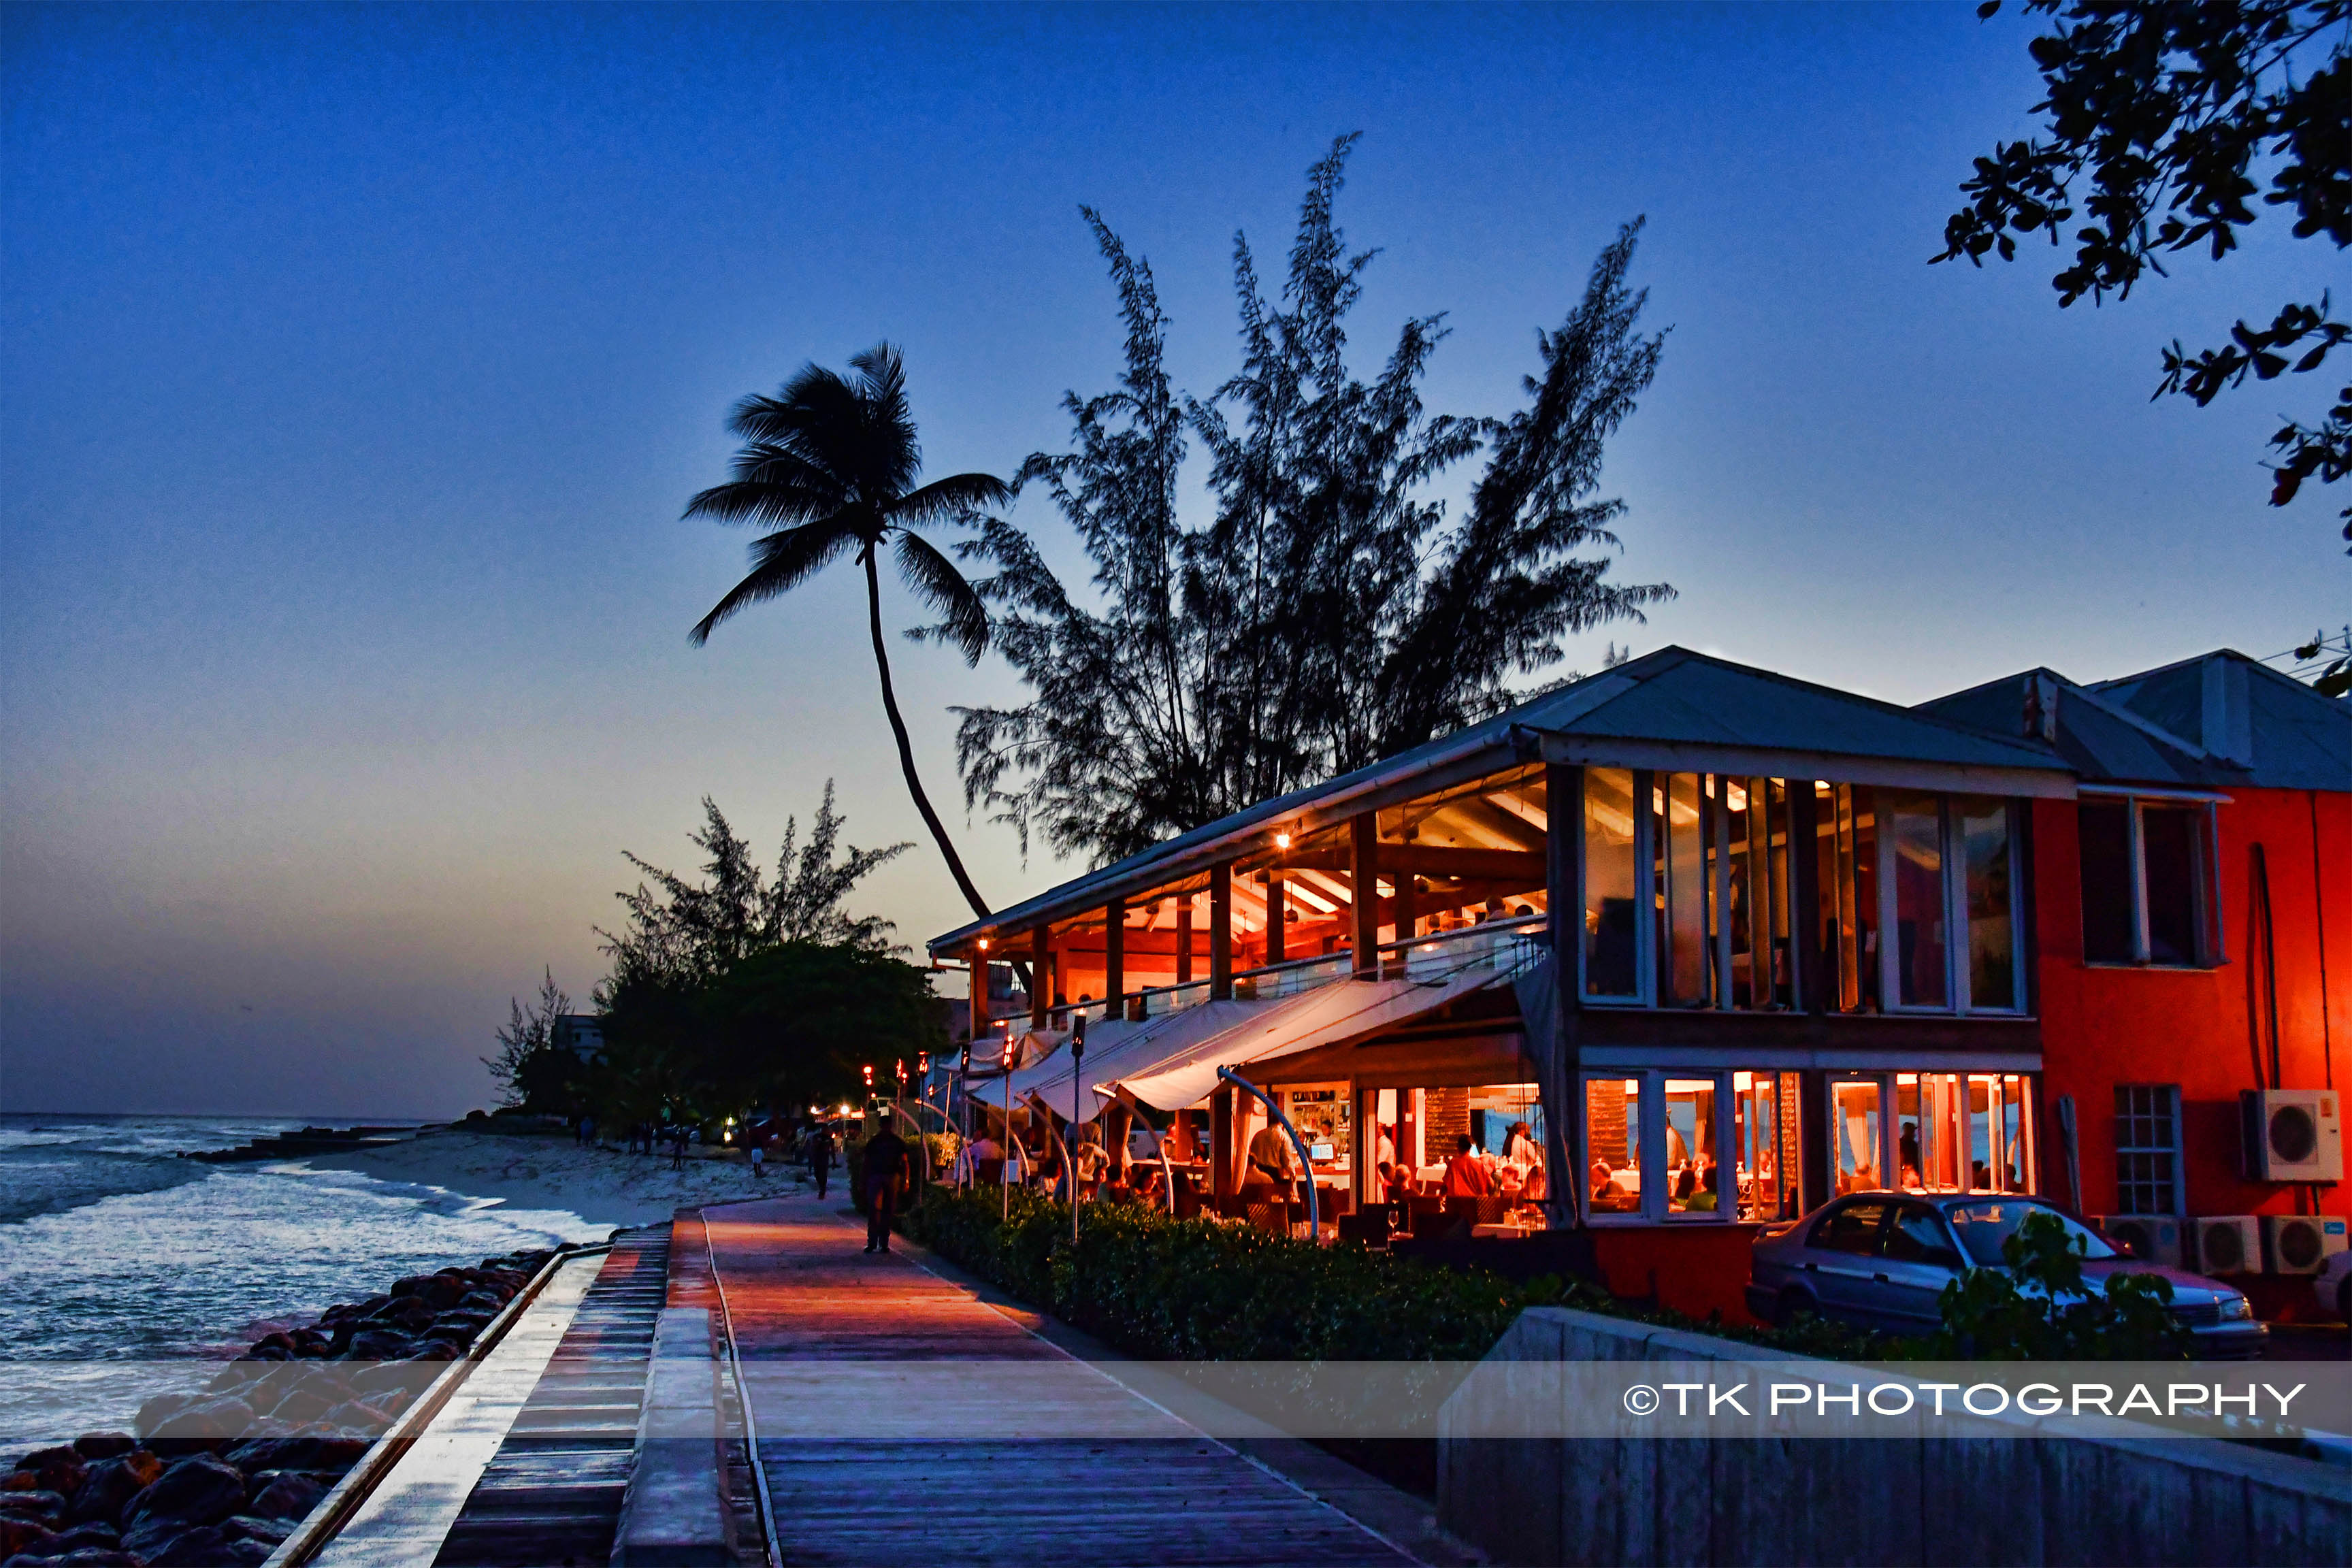 TKPhotography-Barbados-Photographer-Tappas-Restaurant-commecial-photos